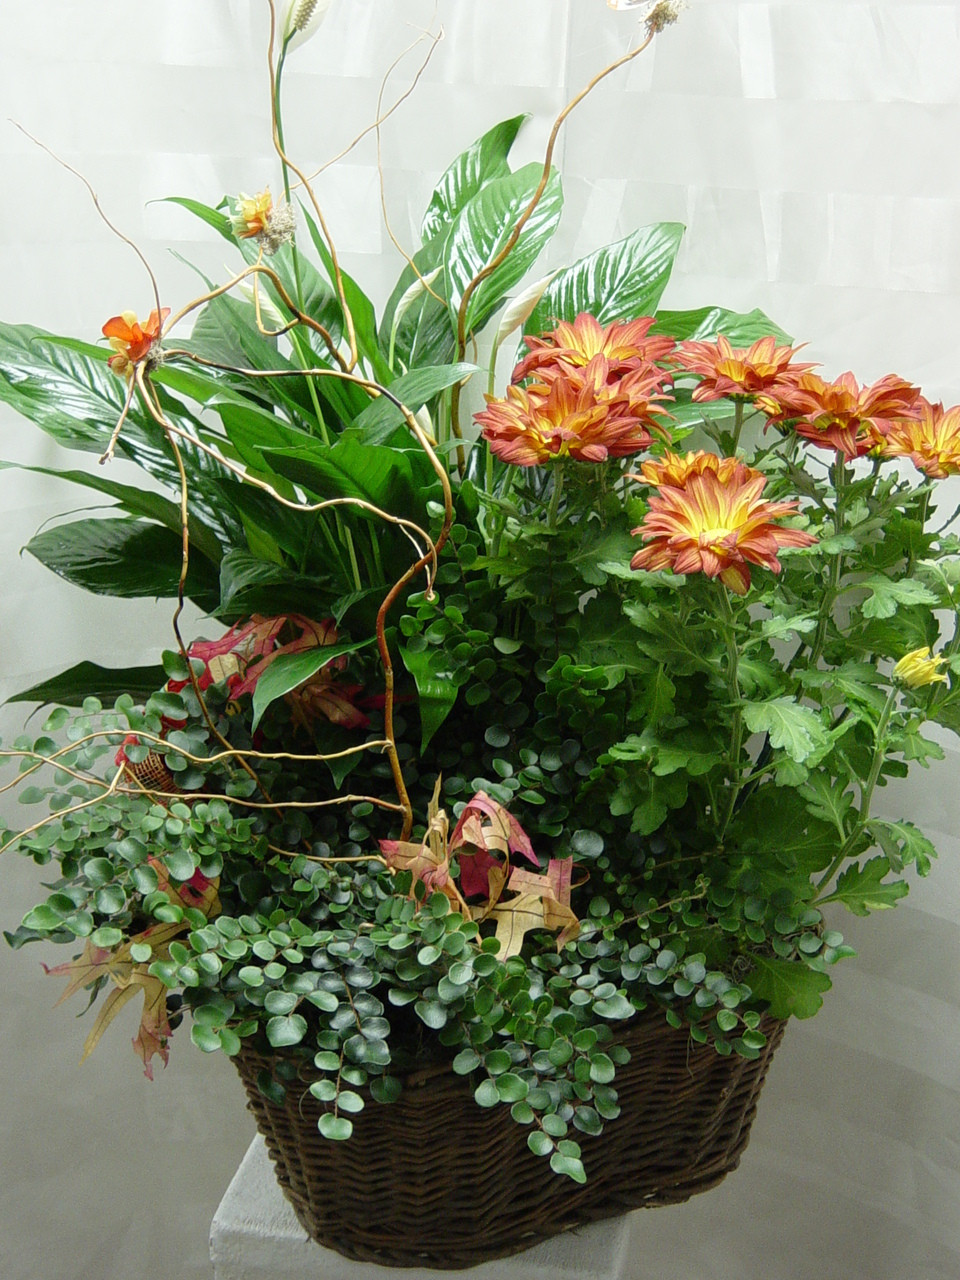 Blooming Plant Gardens Are Great Keepsakes For Fuenral Flowers